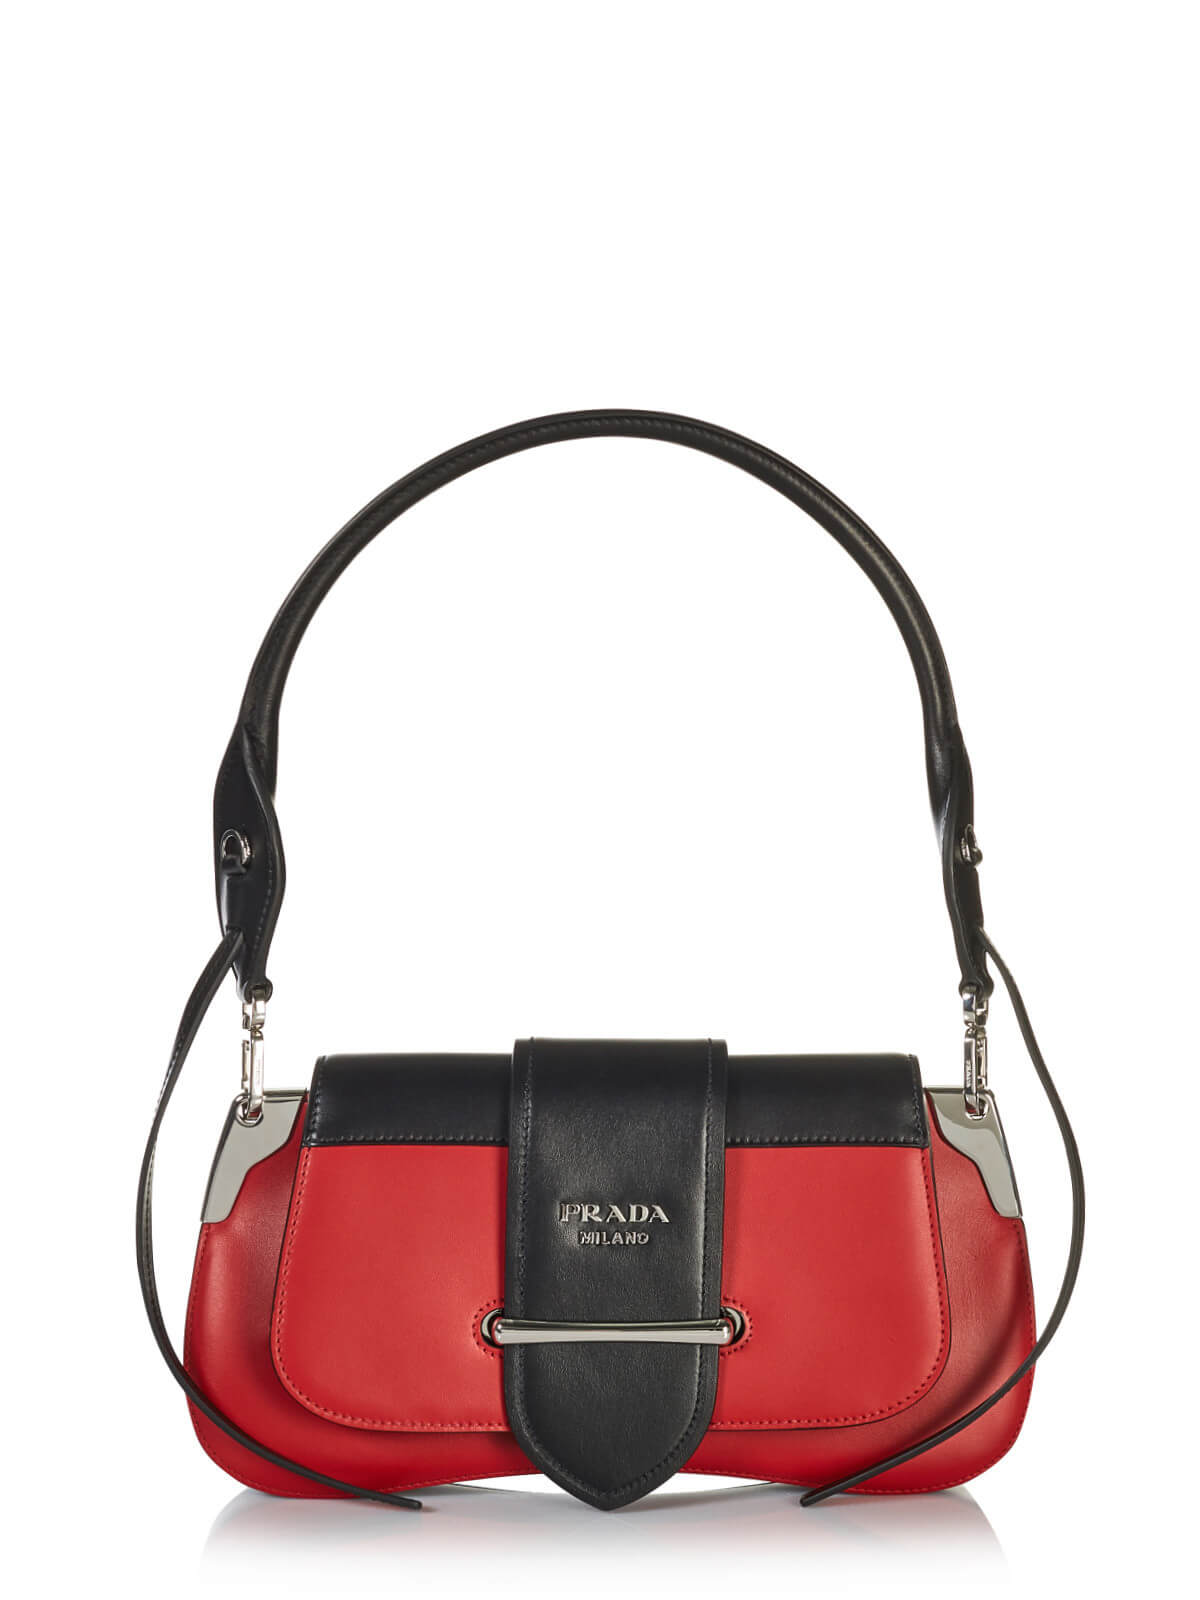 3658e7454f3e Prada Sidonie leather shoulder bag | Fashionesta online shop